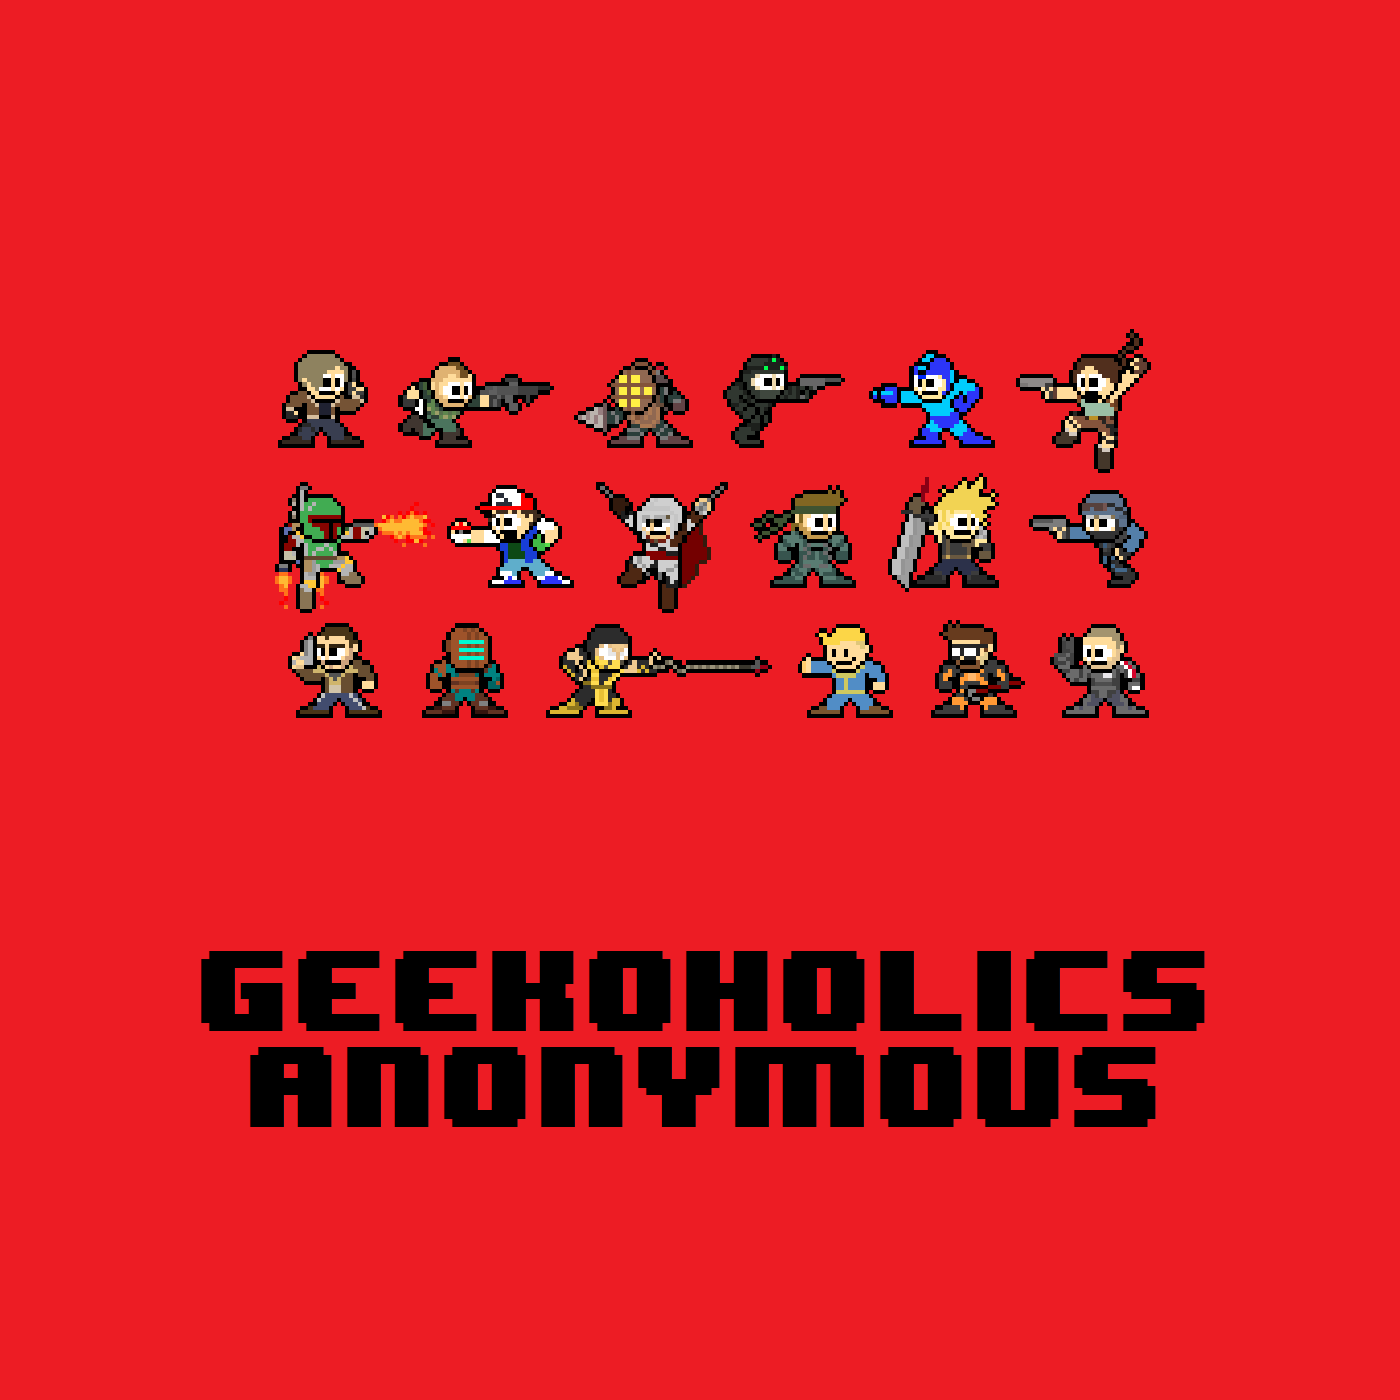 Far Cry 6, RTX 3080 Ti, Horizon Forbidden West, Cruella and more - Geekoholics Anonymous Podcast 308 show art